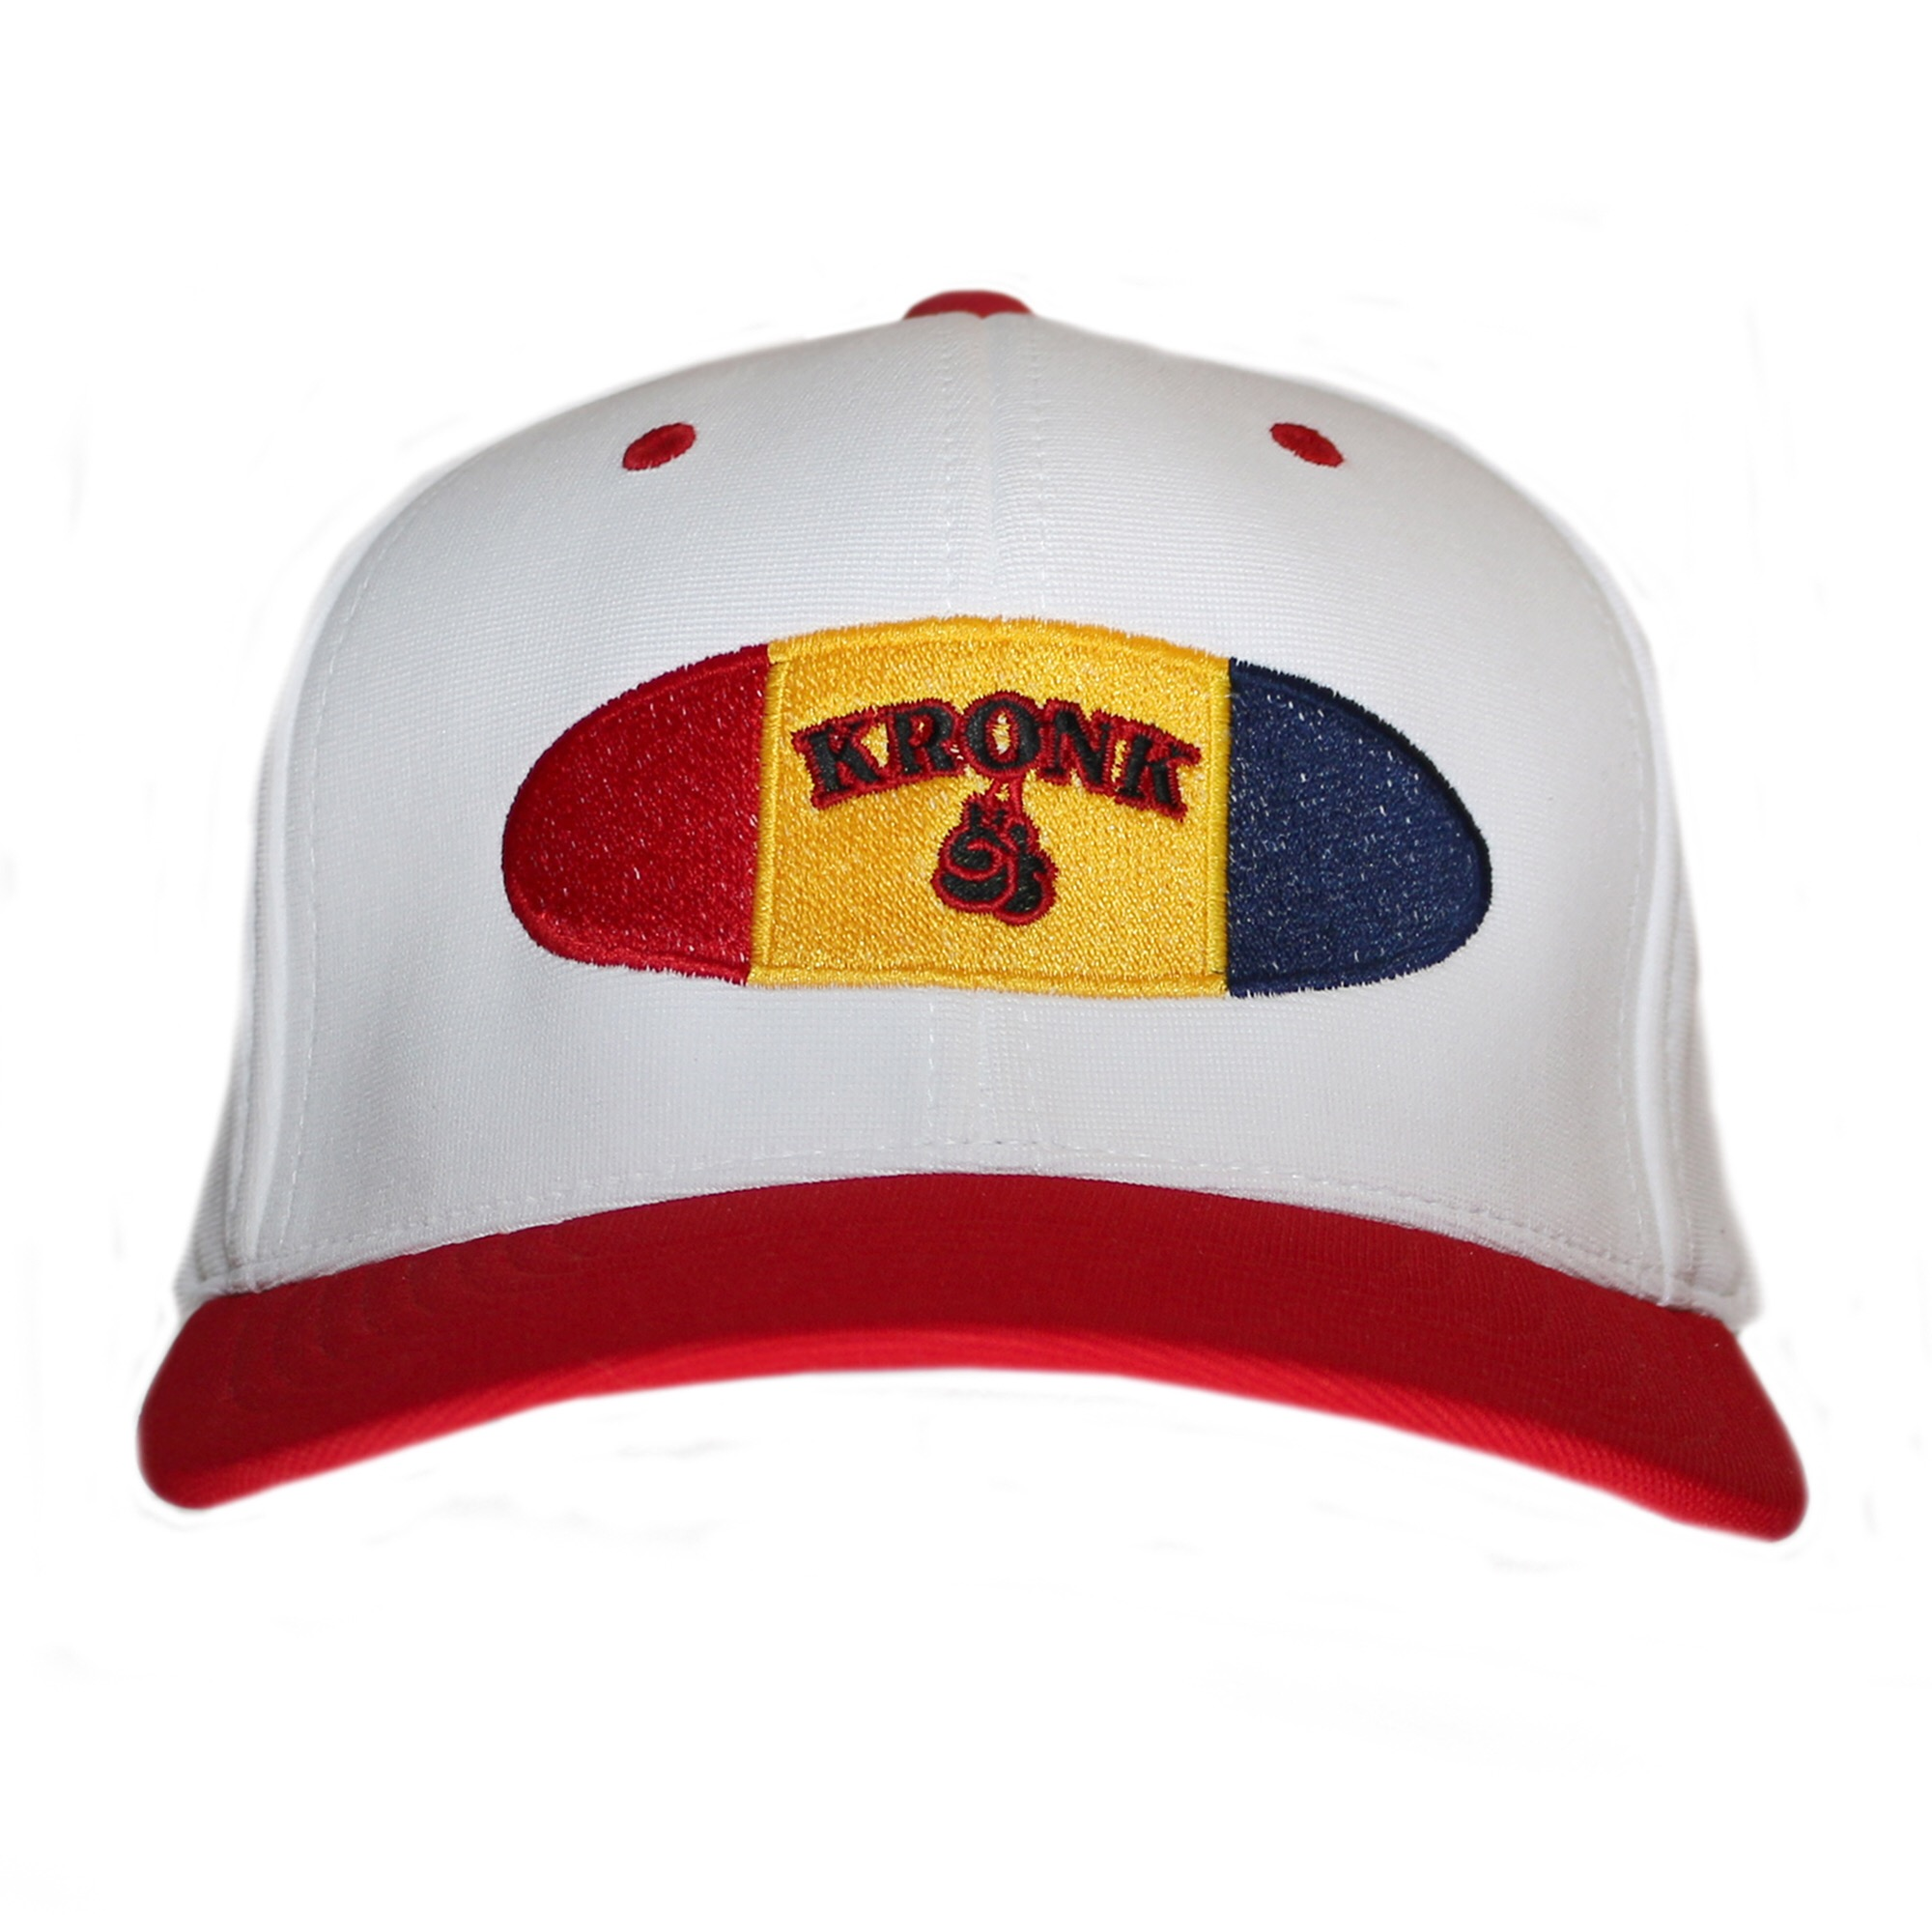 white kronk cap with red bill